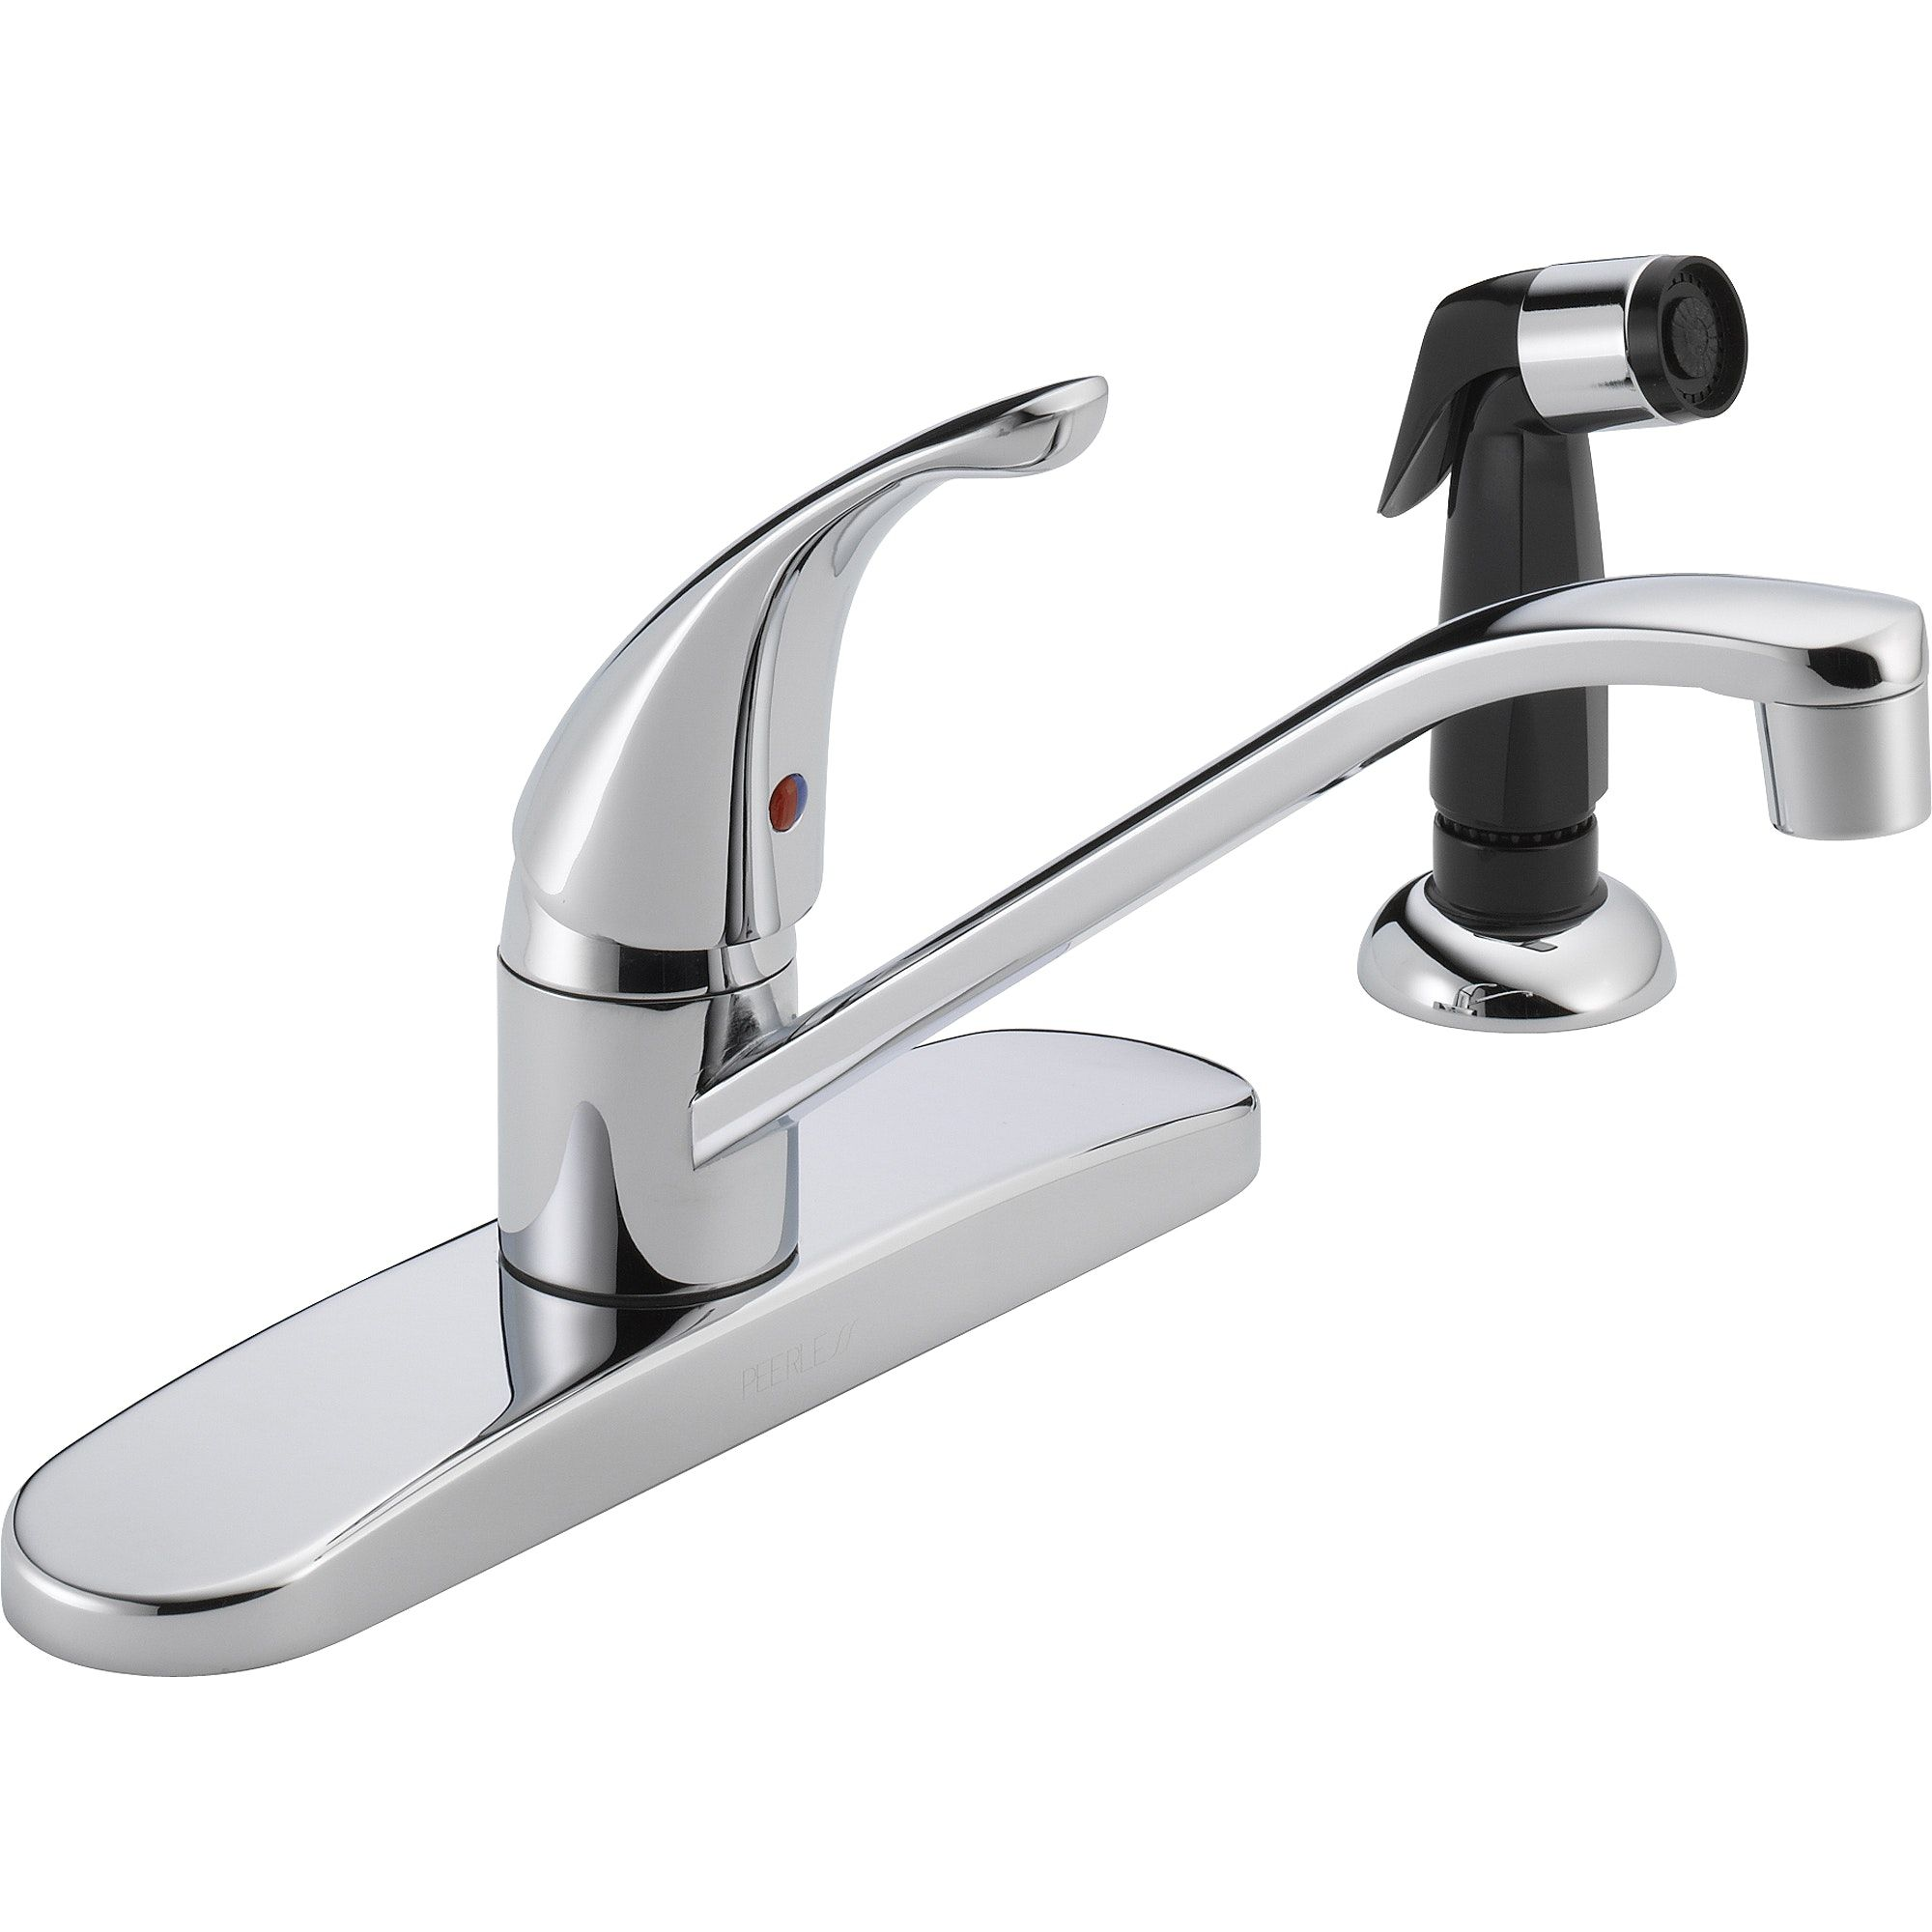 Wall Mount Single Handle Kitchen Faucet Budeli Design Moen With Spout